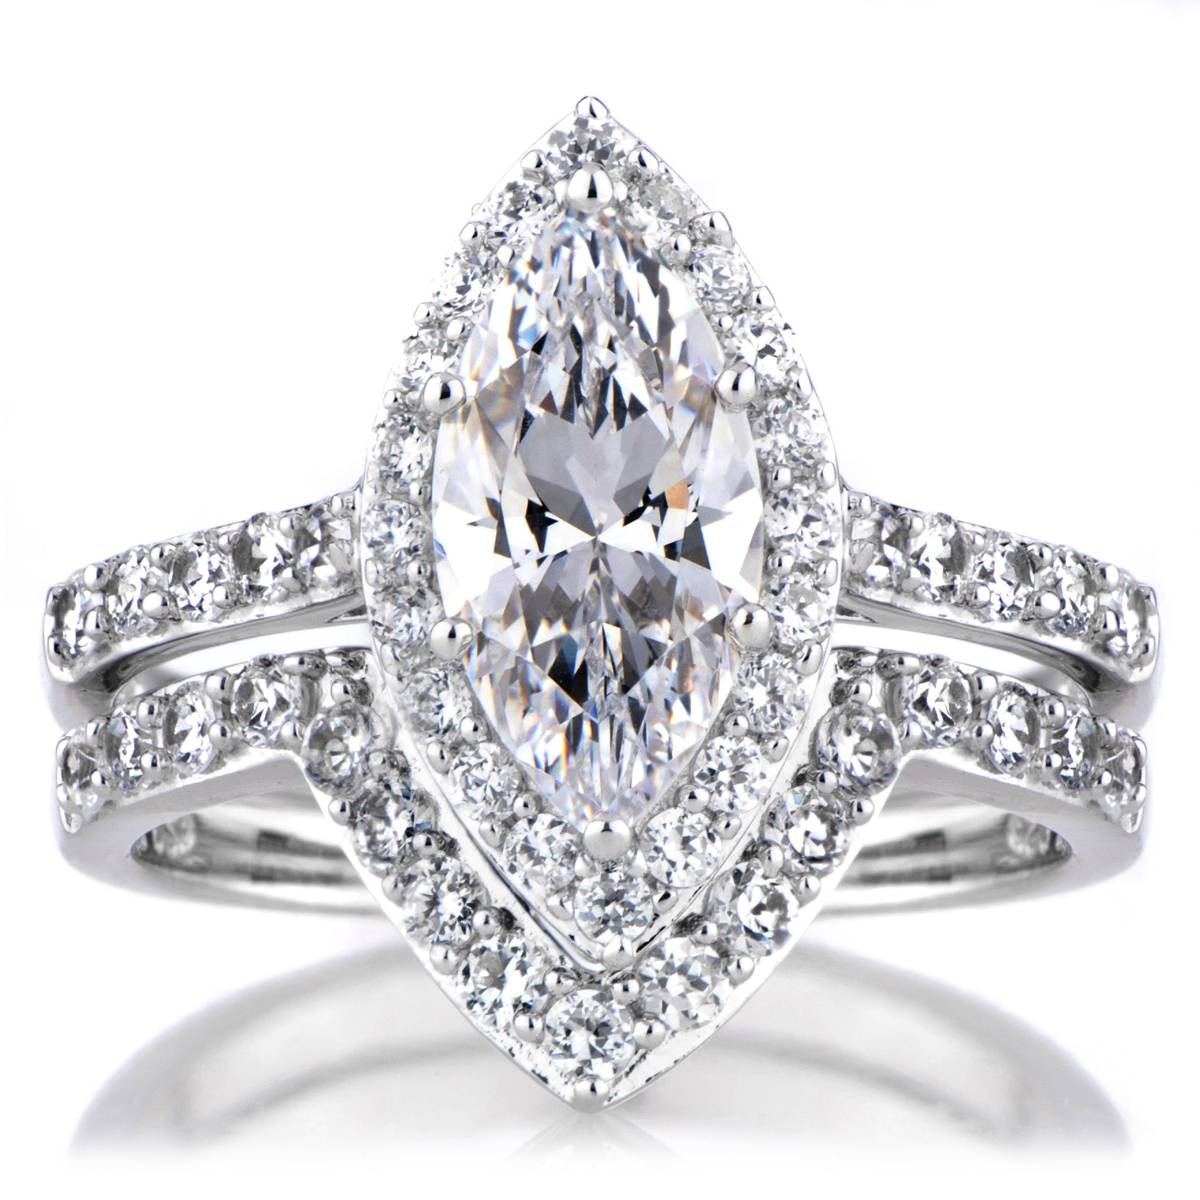 Marquise Cut Cz Engagement Ring And Guard Set Pertaining To Marquise Cut Diamond Wedding Rings Sets (View 4 of 15)